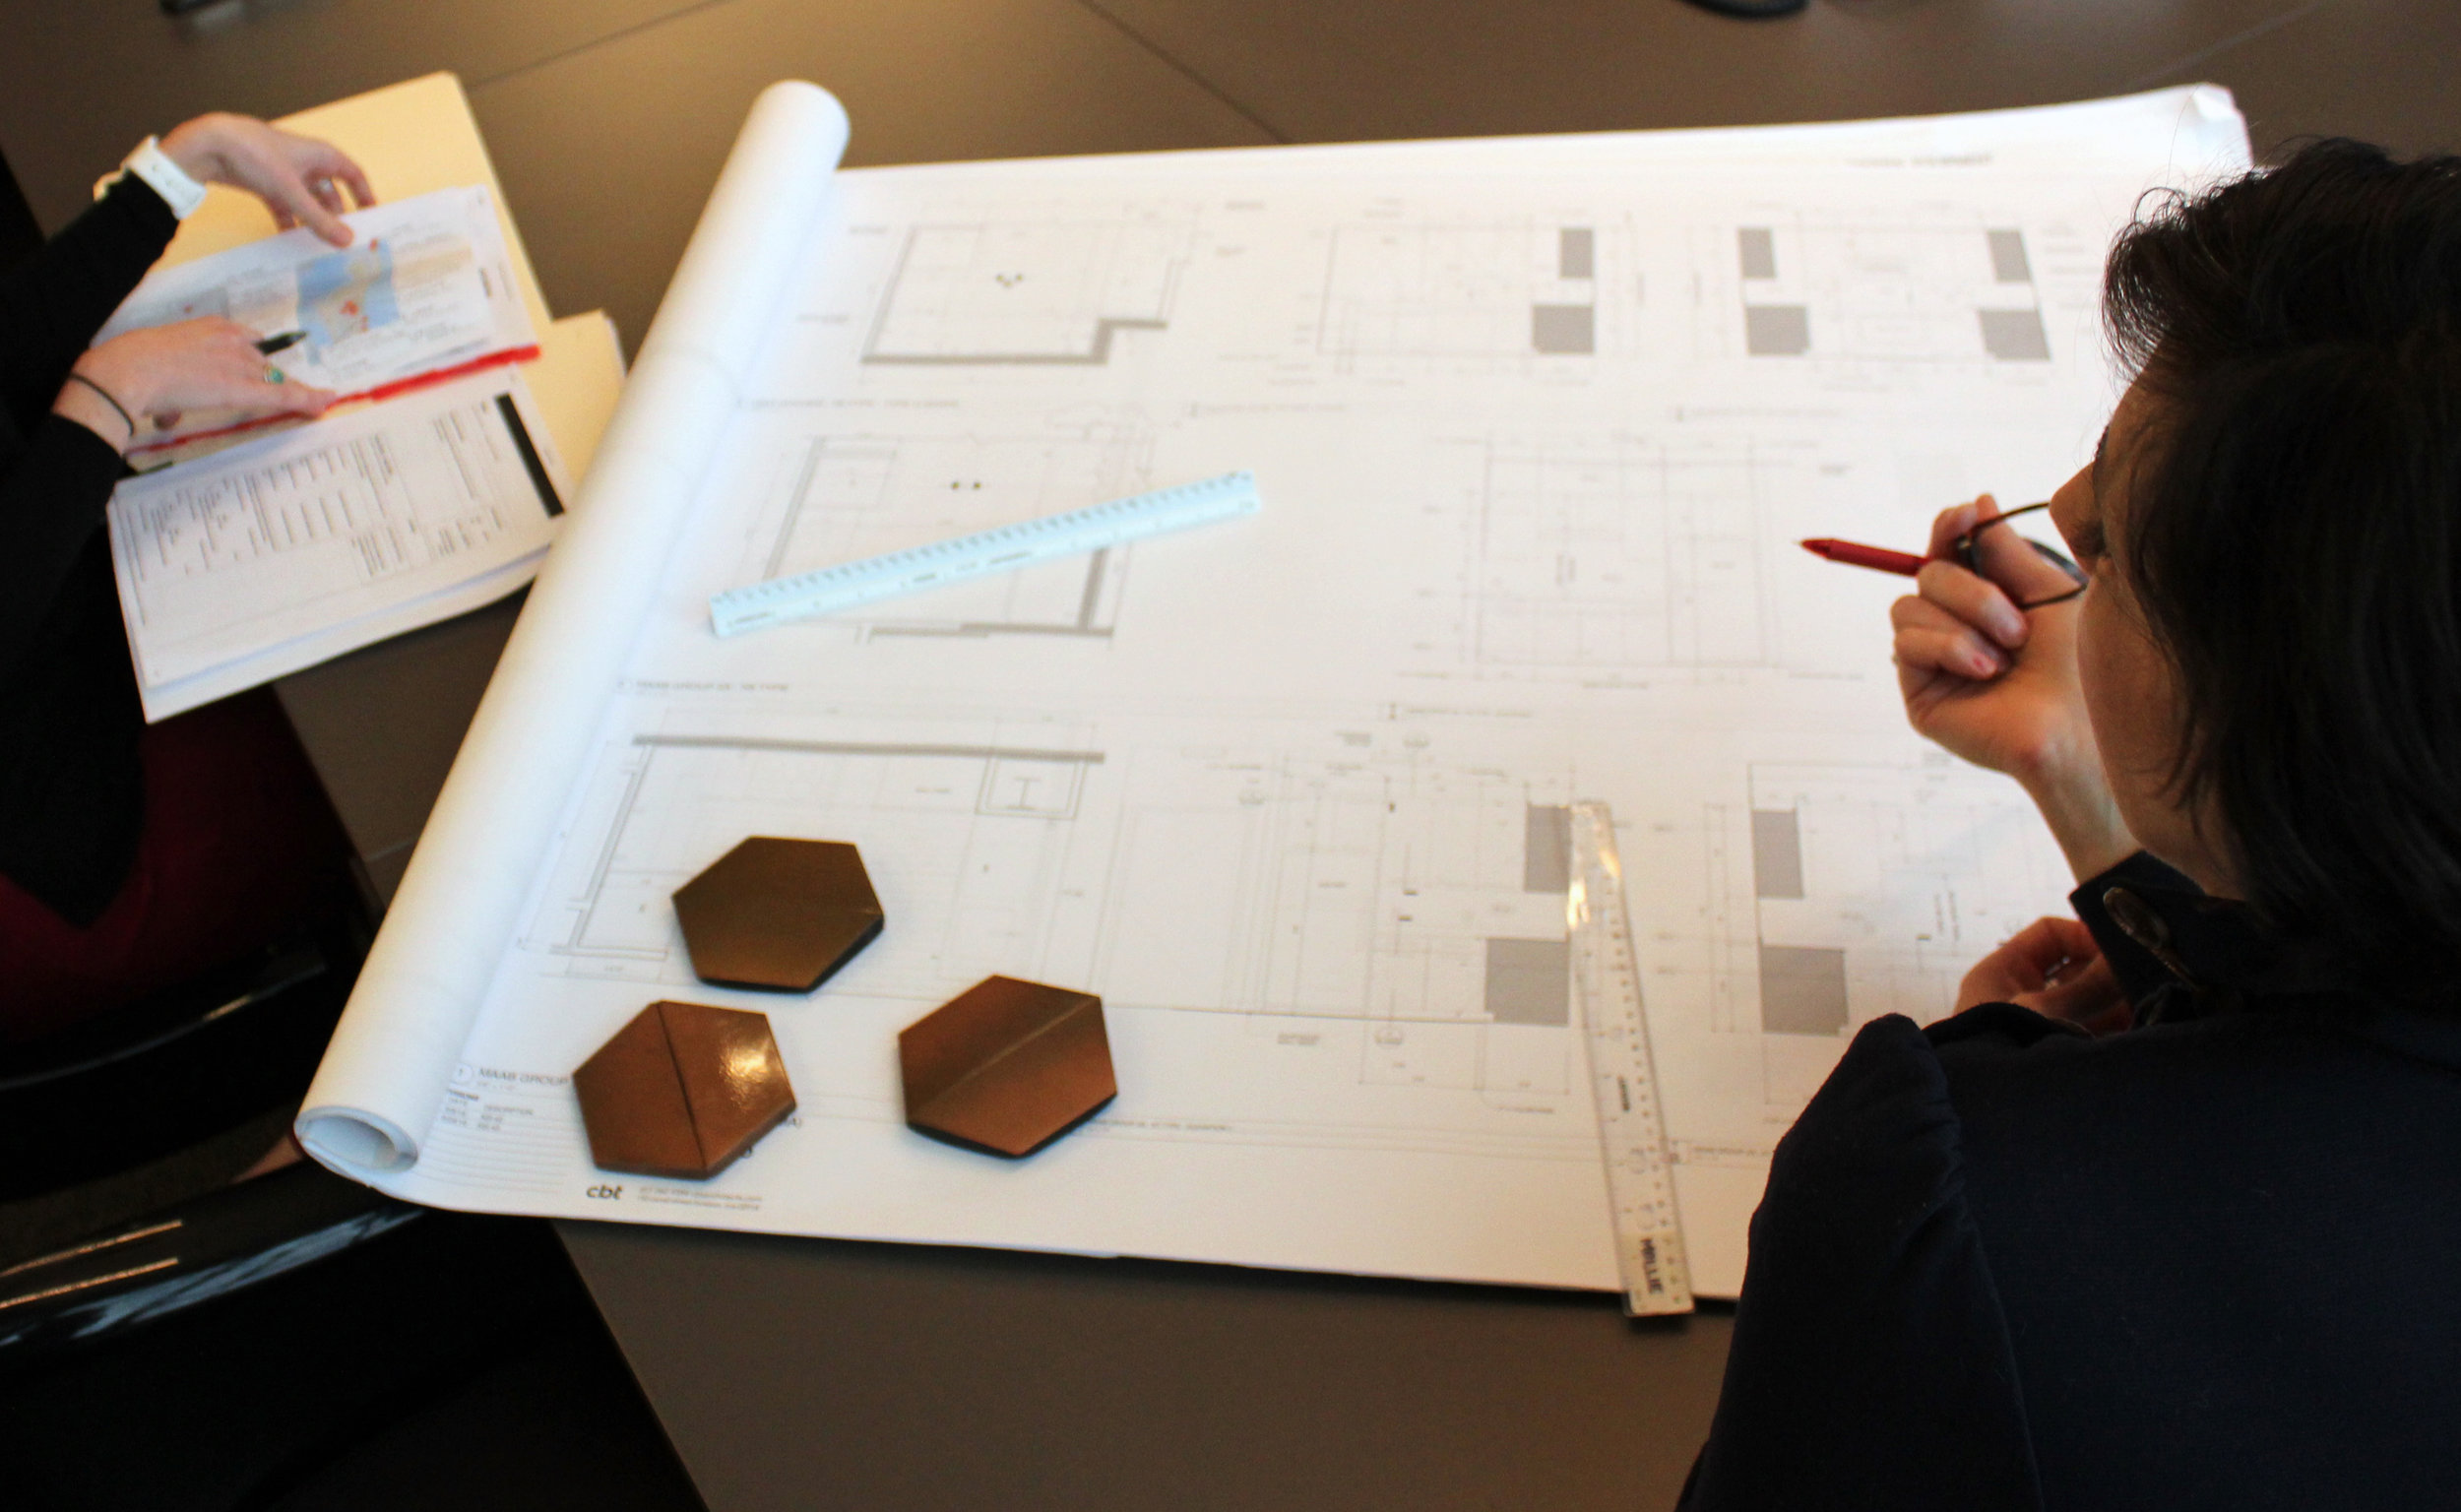 We take an innovative and collaborative approach - to the design and execution of every art program. Our consultants are experienced and knowledgeable, and able to cull an extensive array of art media to work with you on projects of any size and scope. We collaborate with architects, interior designers, art committees, and others involved with art purchases. We want to see your floor plans, mood boards, swatches, and fabric samples! If you have an existing collection, we can catalog it, supplement it, restore it, or auction off certain pieces based on your needs.